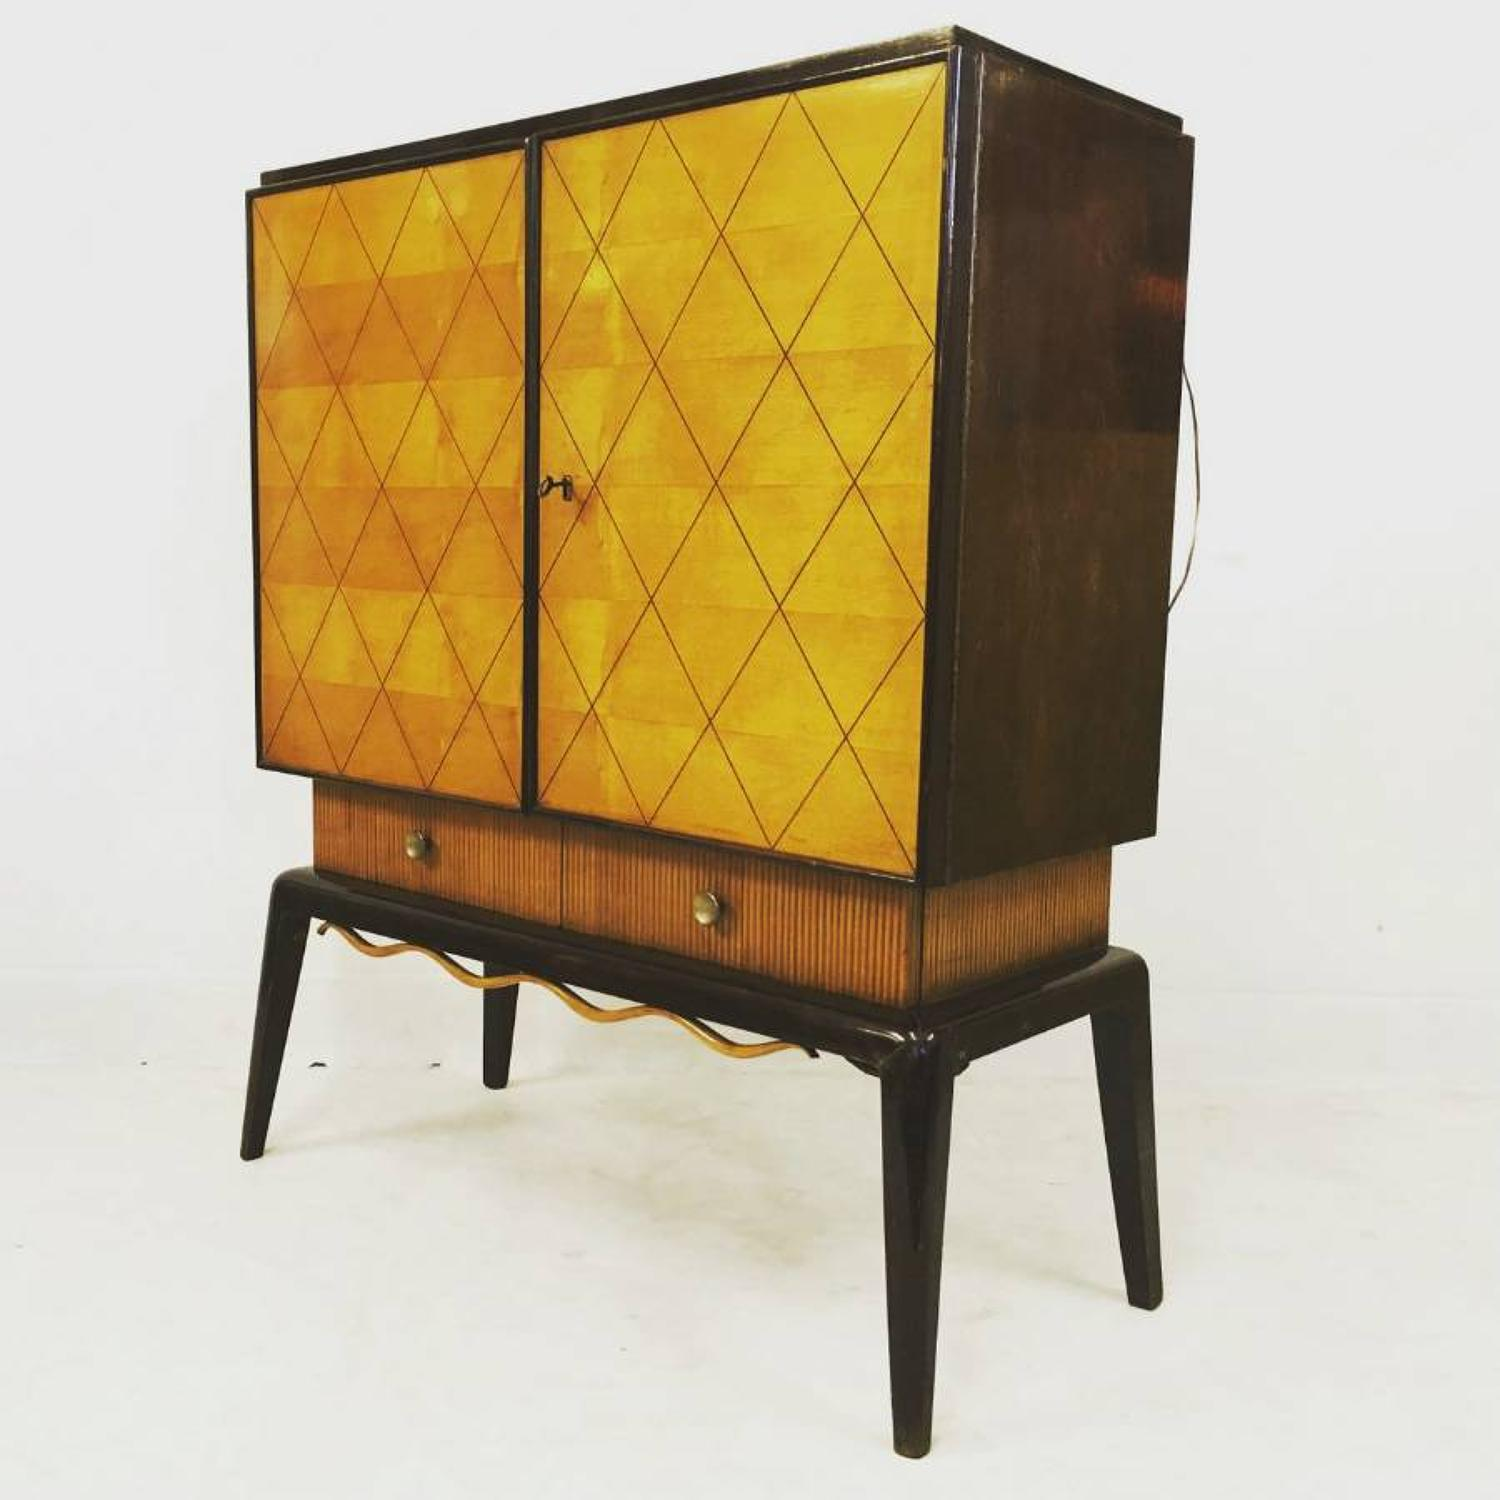 1950s bar cabinet with a moustache